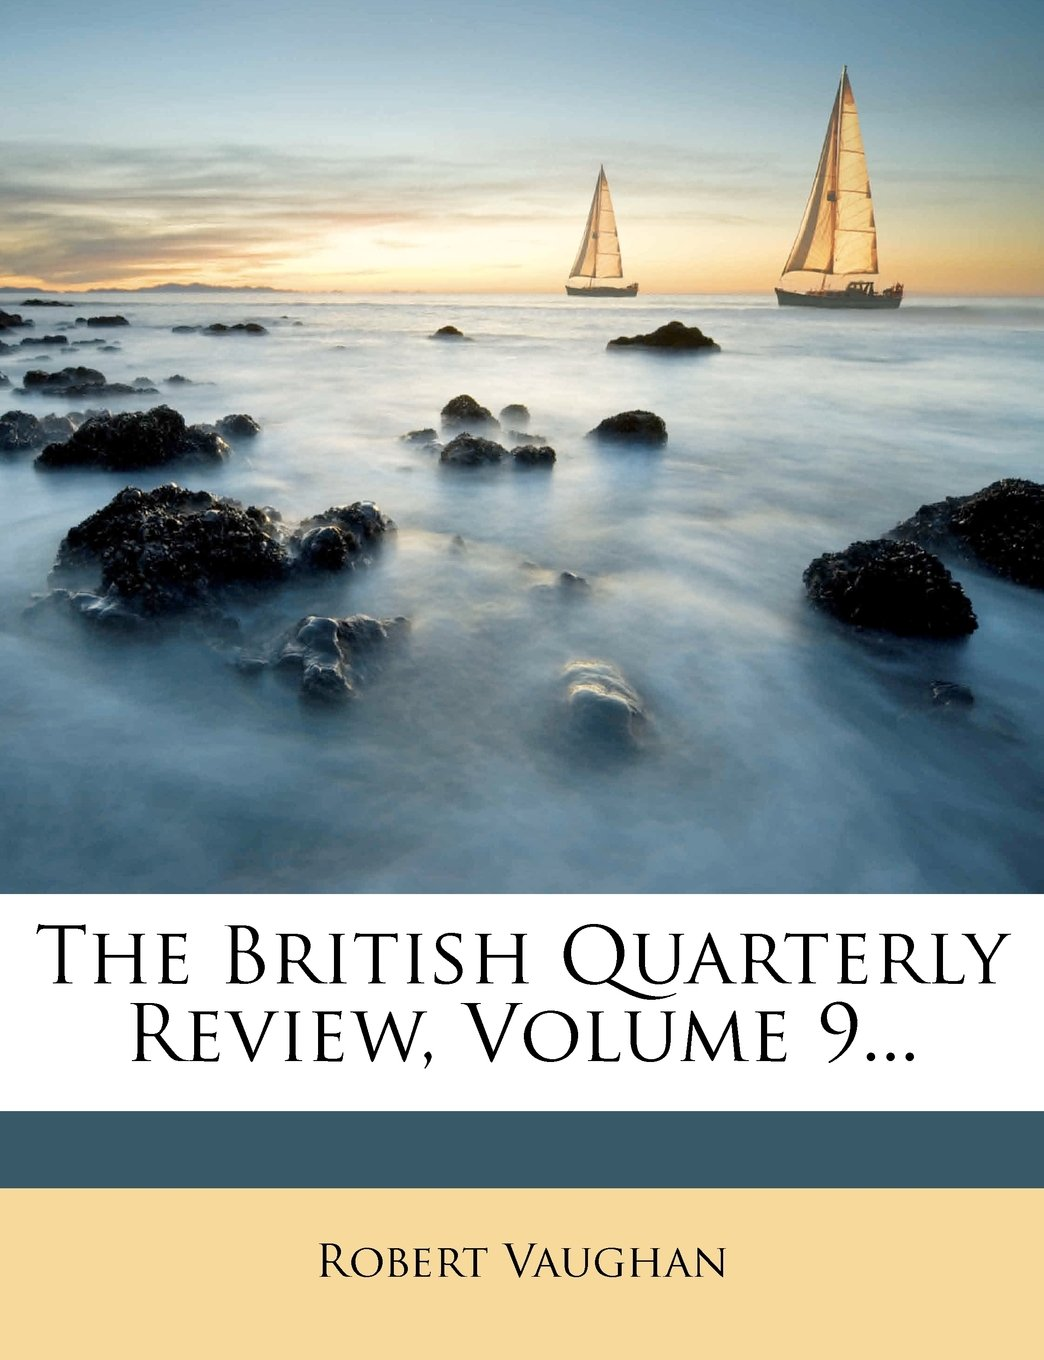 Download The British Quarterly Review, Volume 9... ebook